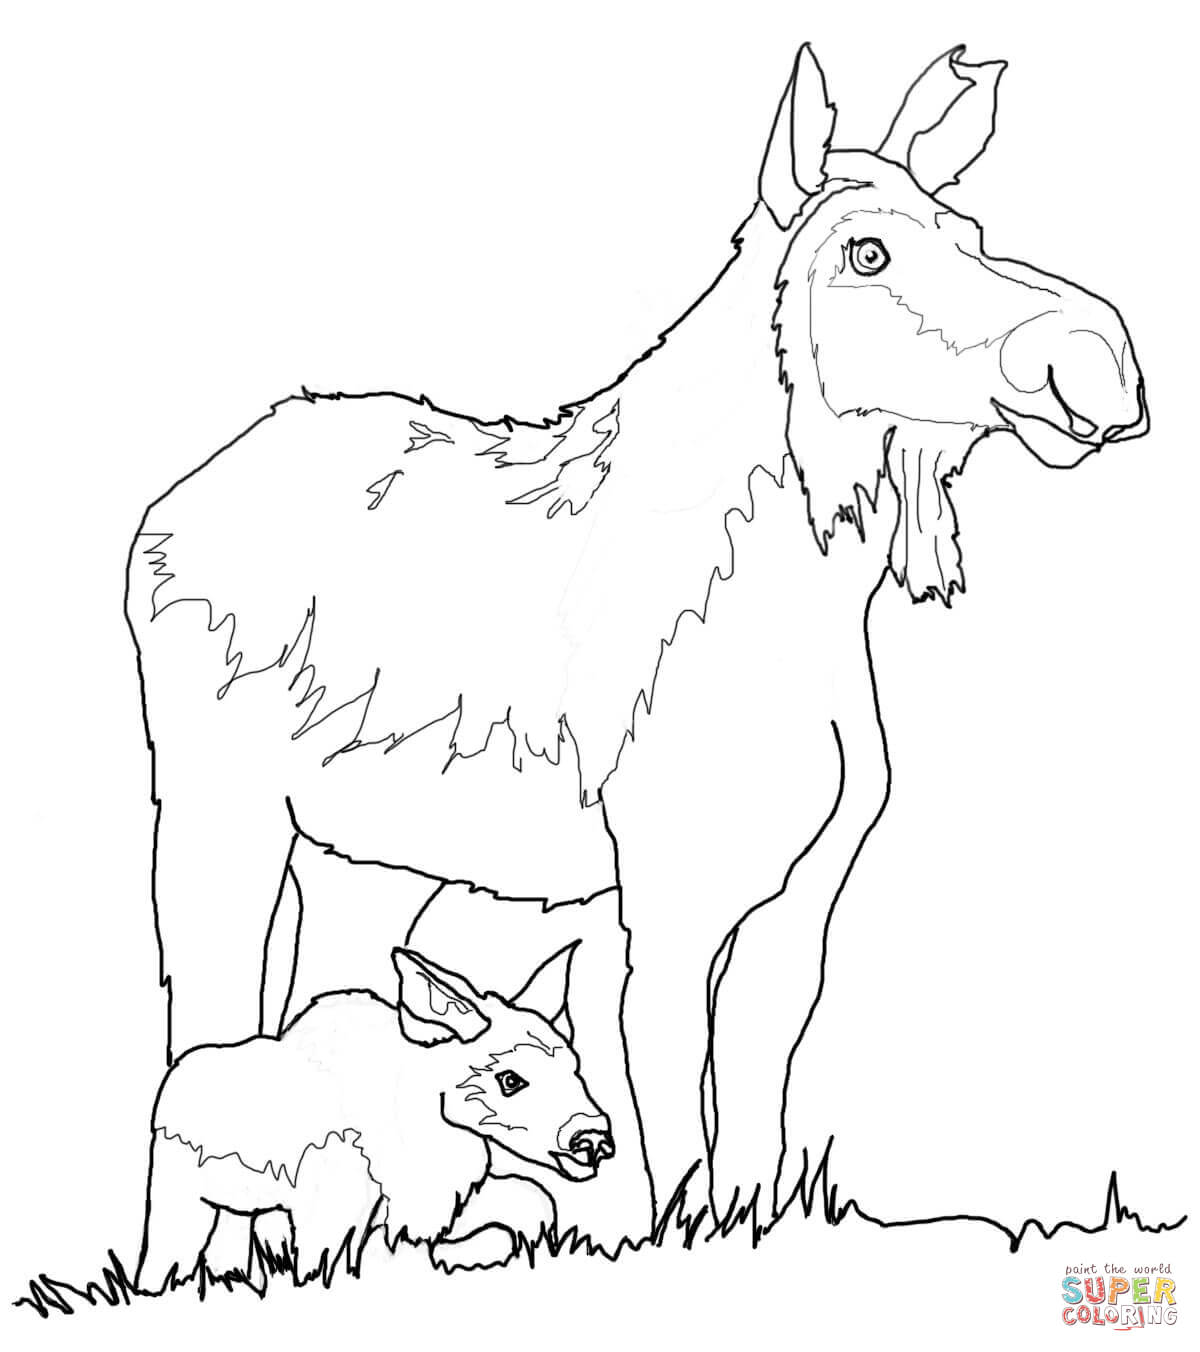 moose-coloring-page-0022-q1